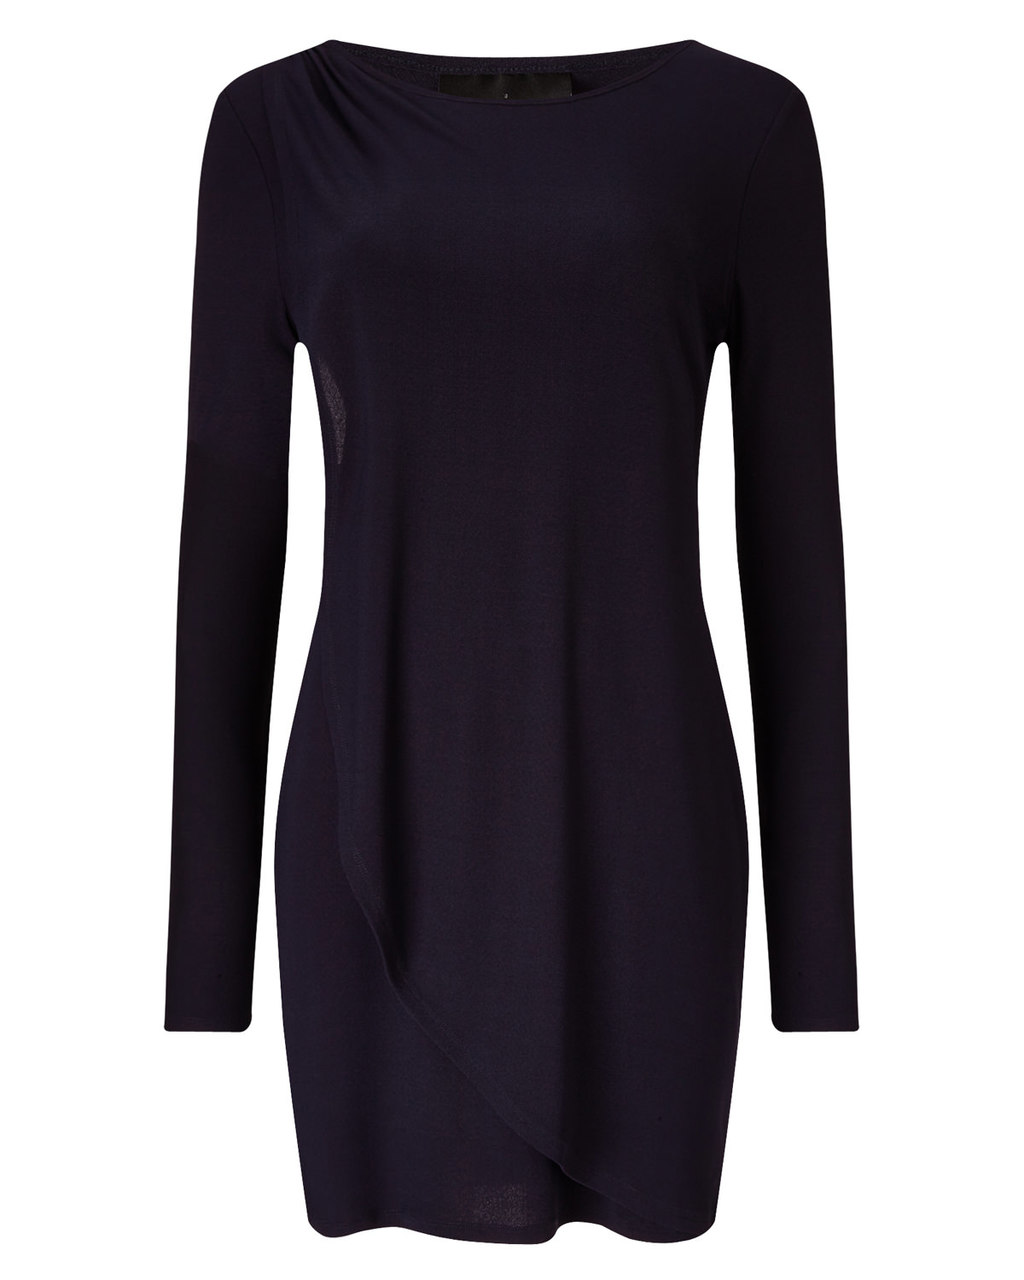 Dotty Draped Tunic - neckline: slash/boat neckline; pattern: plain; style: tunic; predominant colour: navy; occasions: casual, creative work; fibres: cotton - 100%; fit: straight cut; length: mid thigh; sleeve length: long sleeve; sleeve style: standard; pattern type: fabric; texture group: jersey - stretchy/drapey; season: a/w 2015